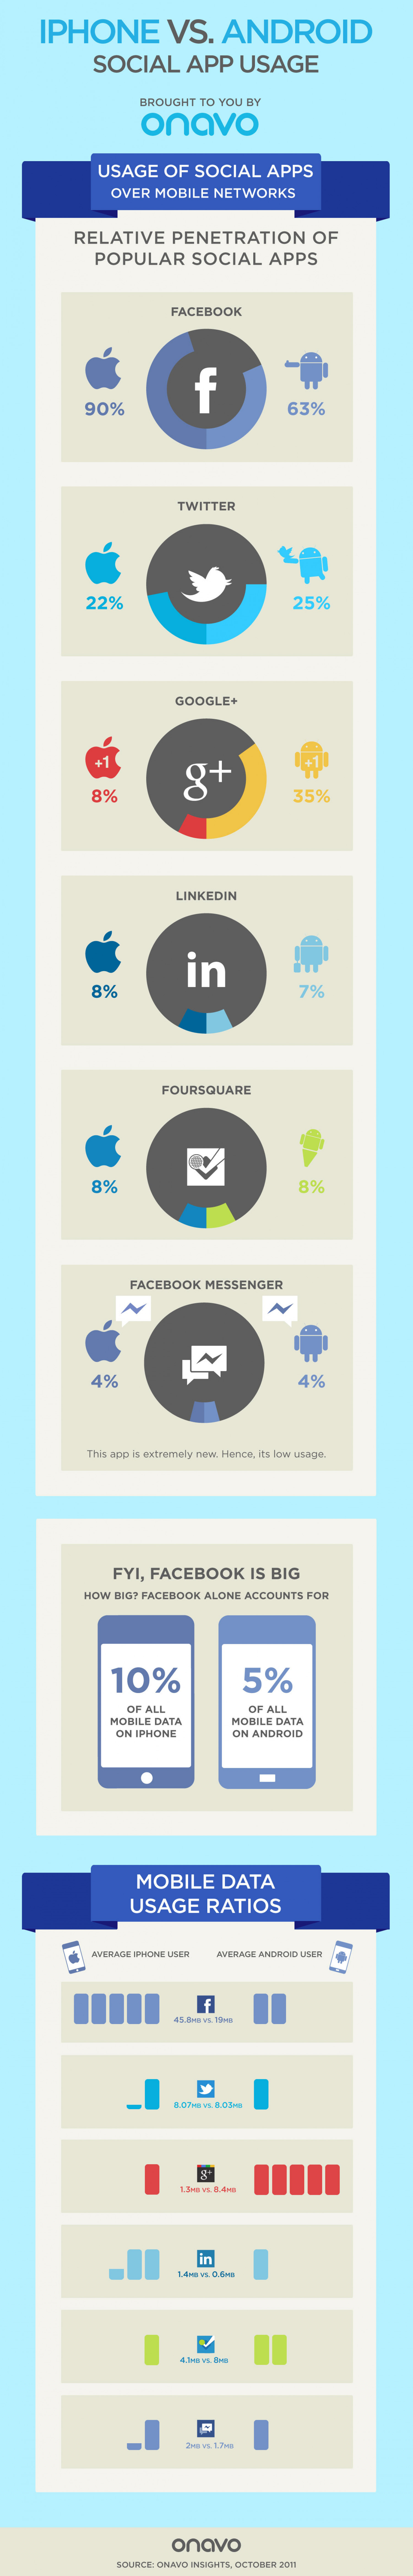 iPhone vs. Android: The Social App Activities That Set Users Apart  Infographic